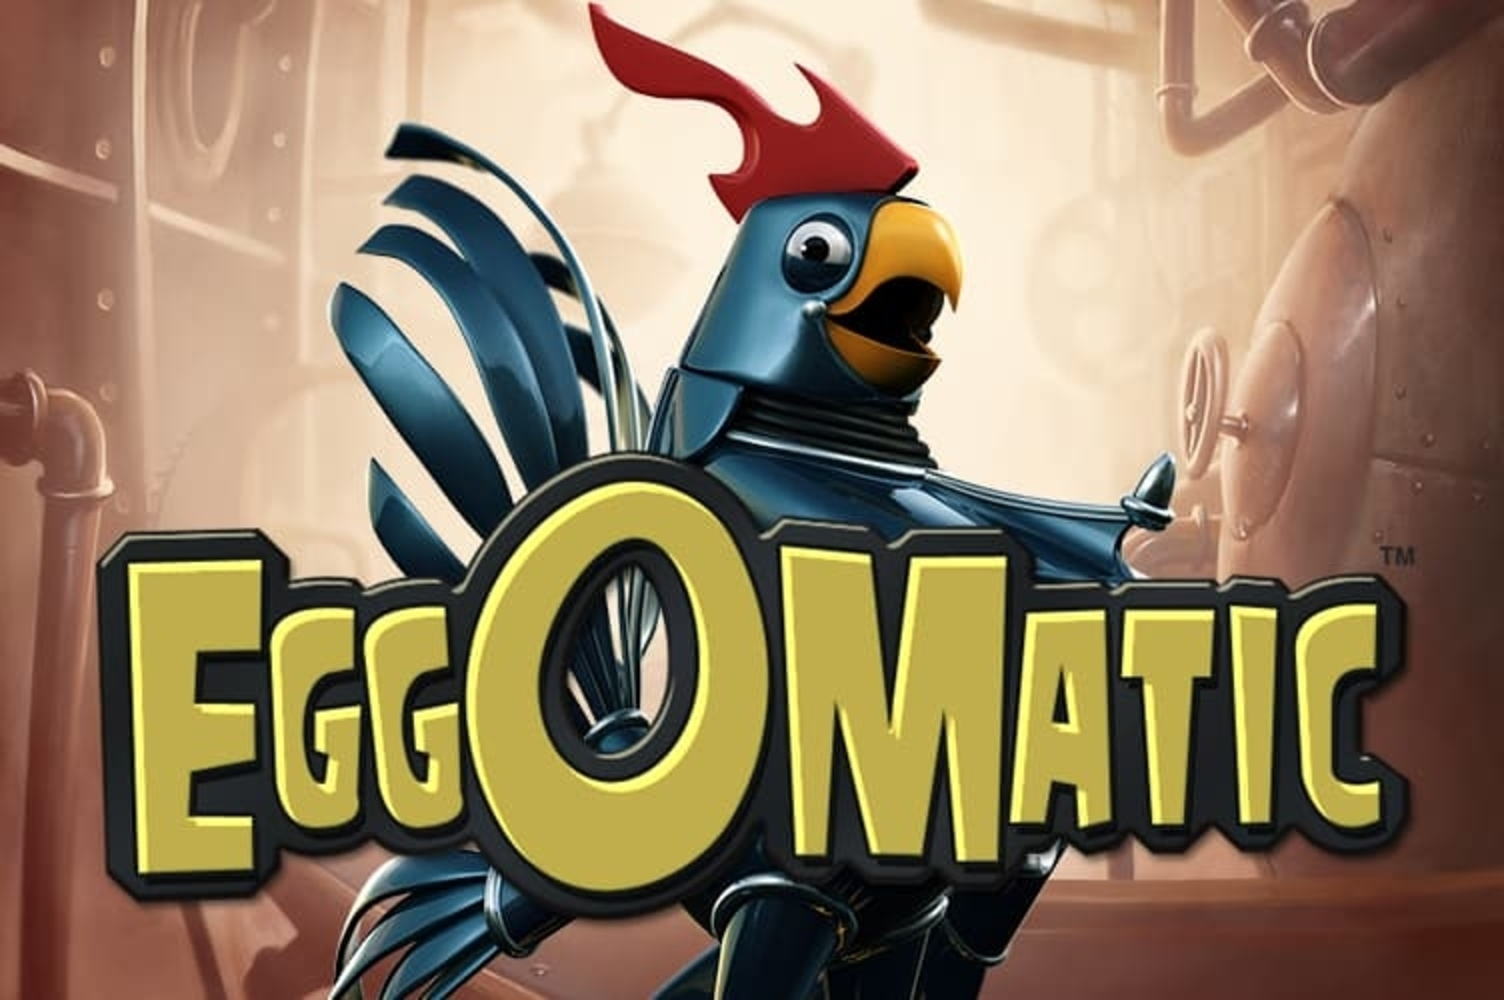 Se Eggomatic Online Slot Demo Game, NetEnt